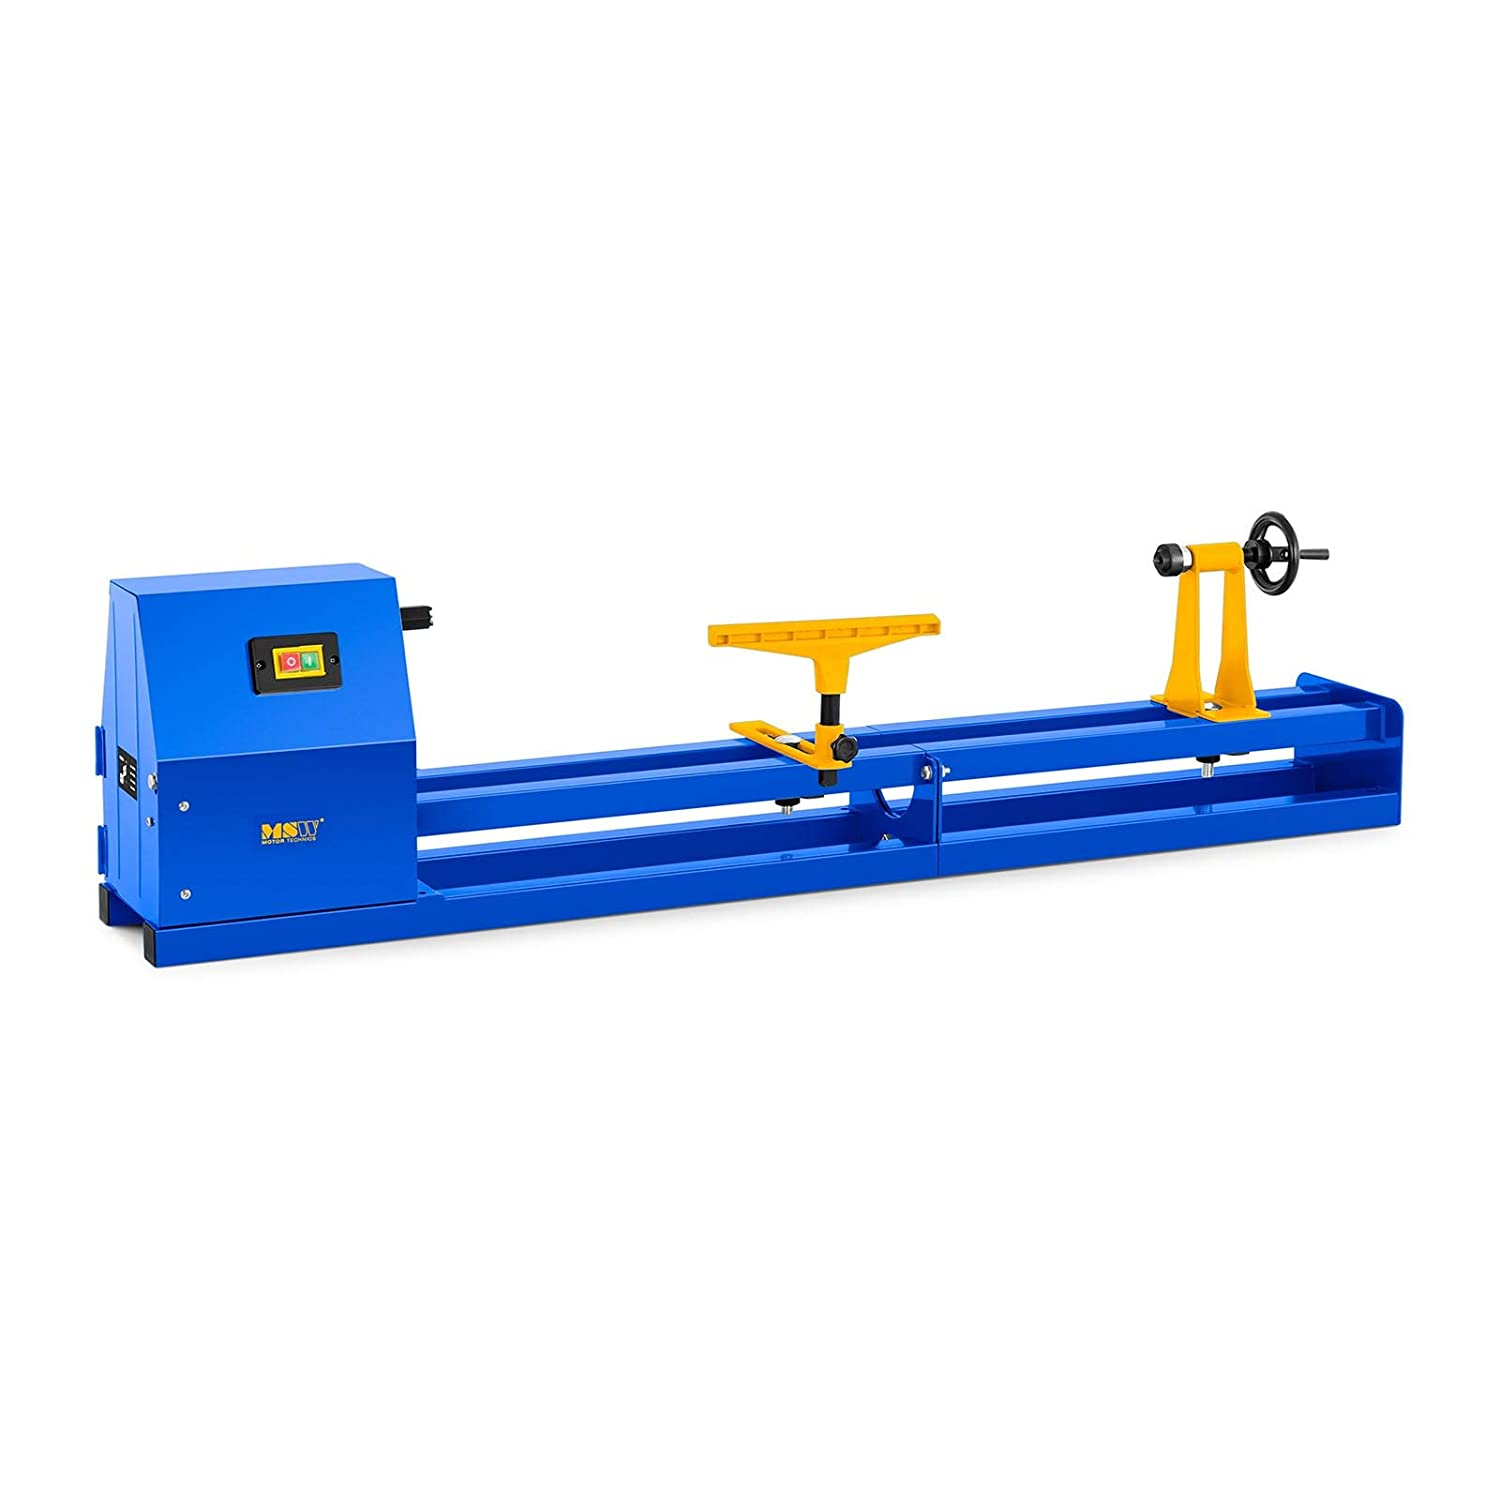 MSW Woodworking Lathe MSW-WL1000 (400 W, Length: 1010 mm, Ø 300 mm, 4 Rotation speeds up to 2,508 r/min, Idle Speed: 1,470 r/min) Ø 300 mm MSW Motor Technics